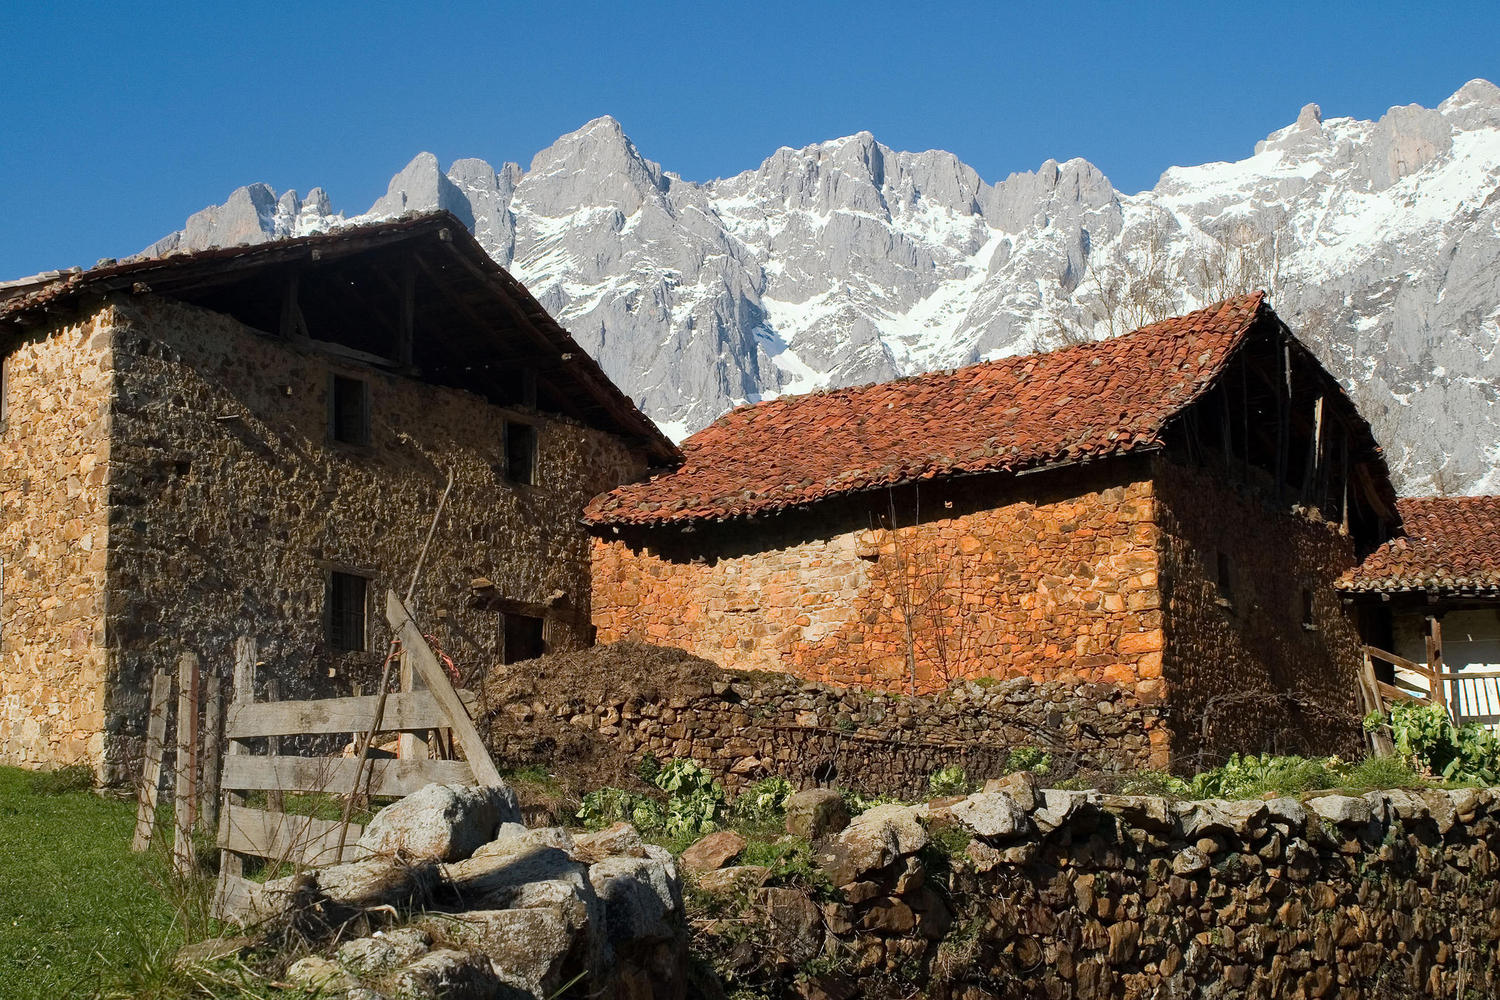 Mogrovejo village with the Picos in the background